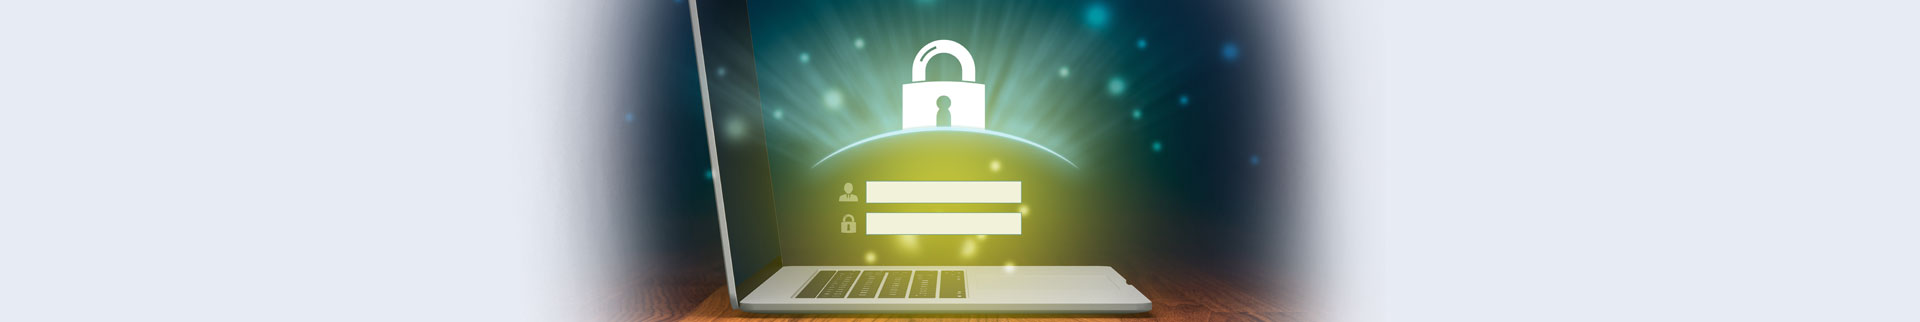 cyber-security-trends-2020